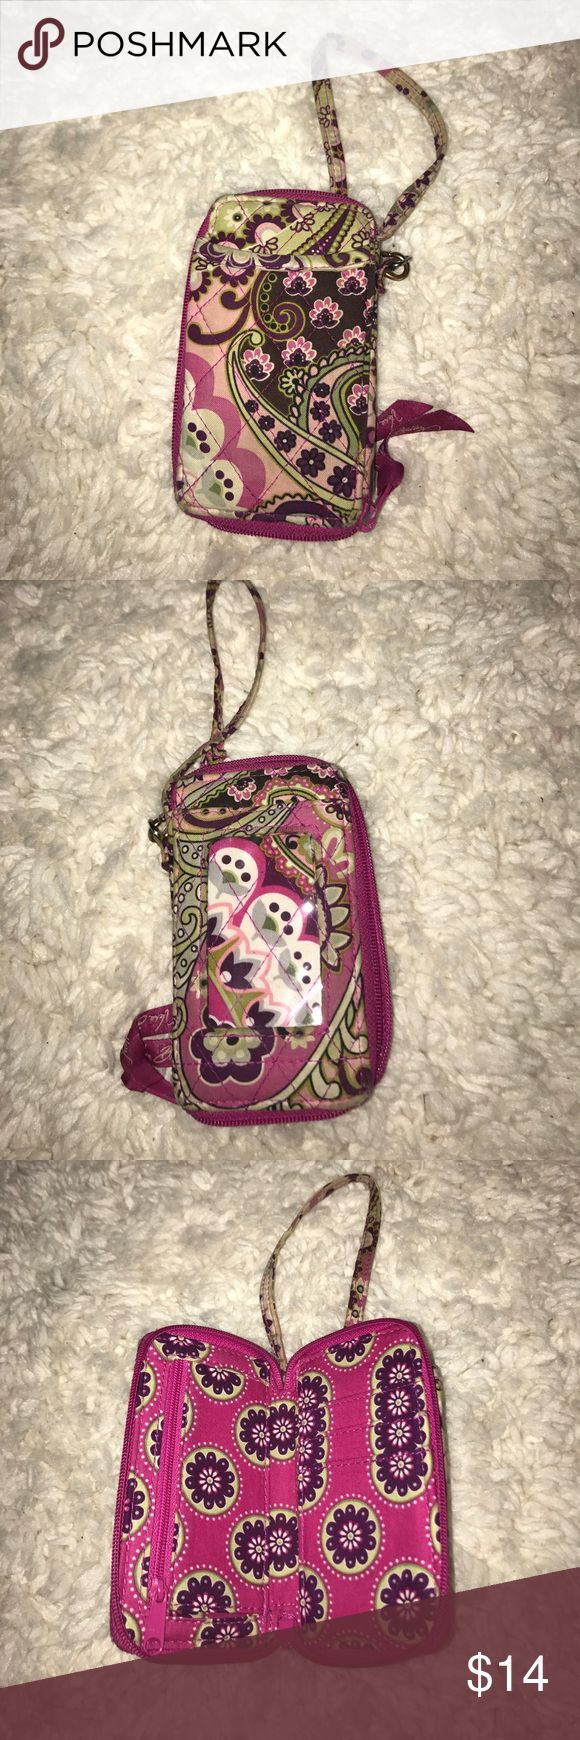 """Vera Bradley Wristlet """"Very Berry Paisley"""" Small Wristlet that holds a small phone, ID, cash, cards, and coins. Lightly used. Vera Bradley Bags Clutches & Wristlets"""